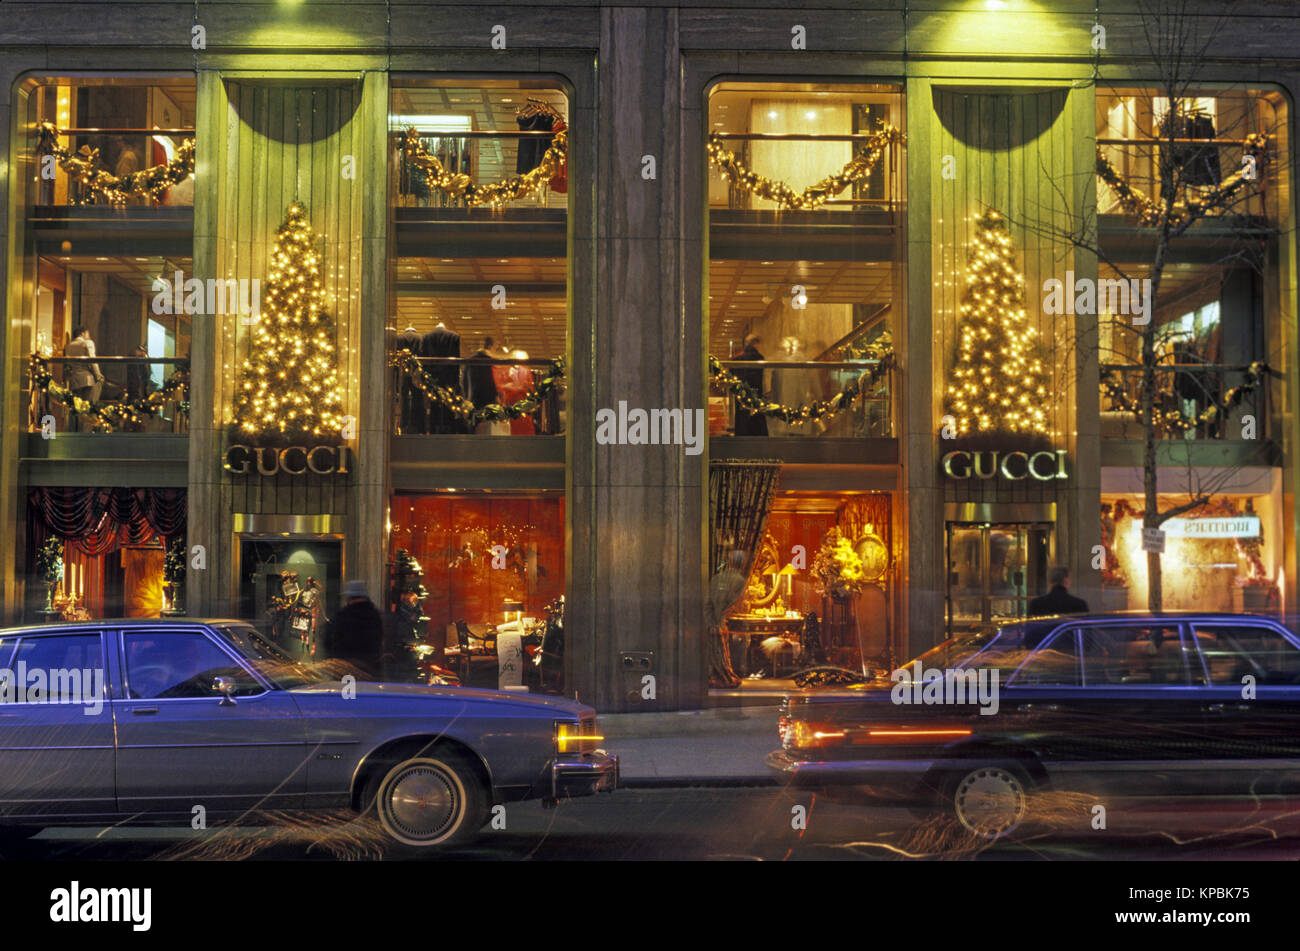 1987 HISTORICAL CHRISTMAS GUCCI SHOP FIFTH AVENUE MANHATTAN NEW YORK CITY USA - Stock Image